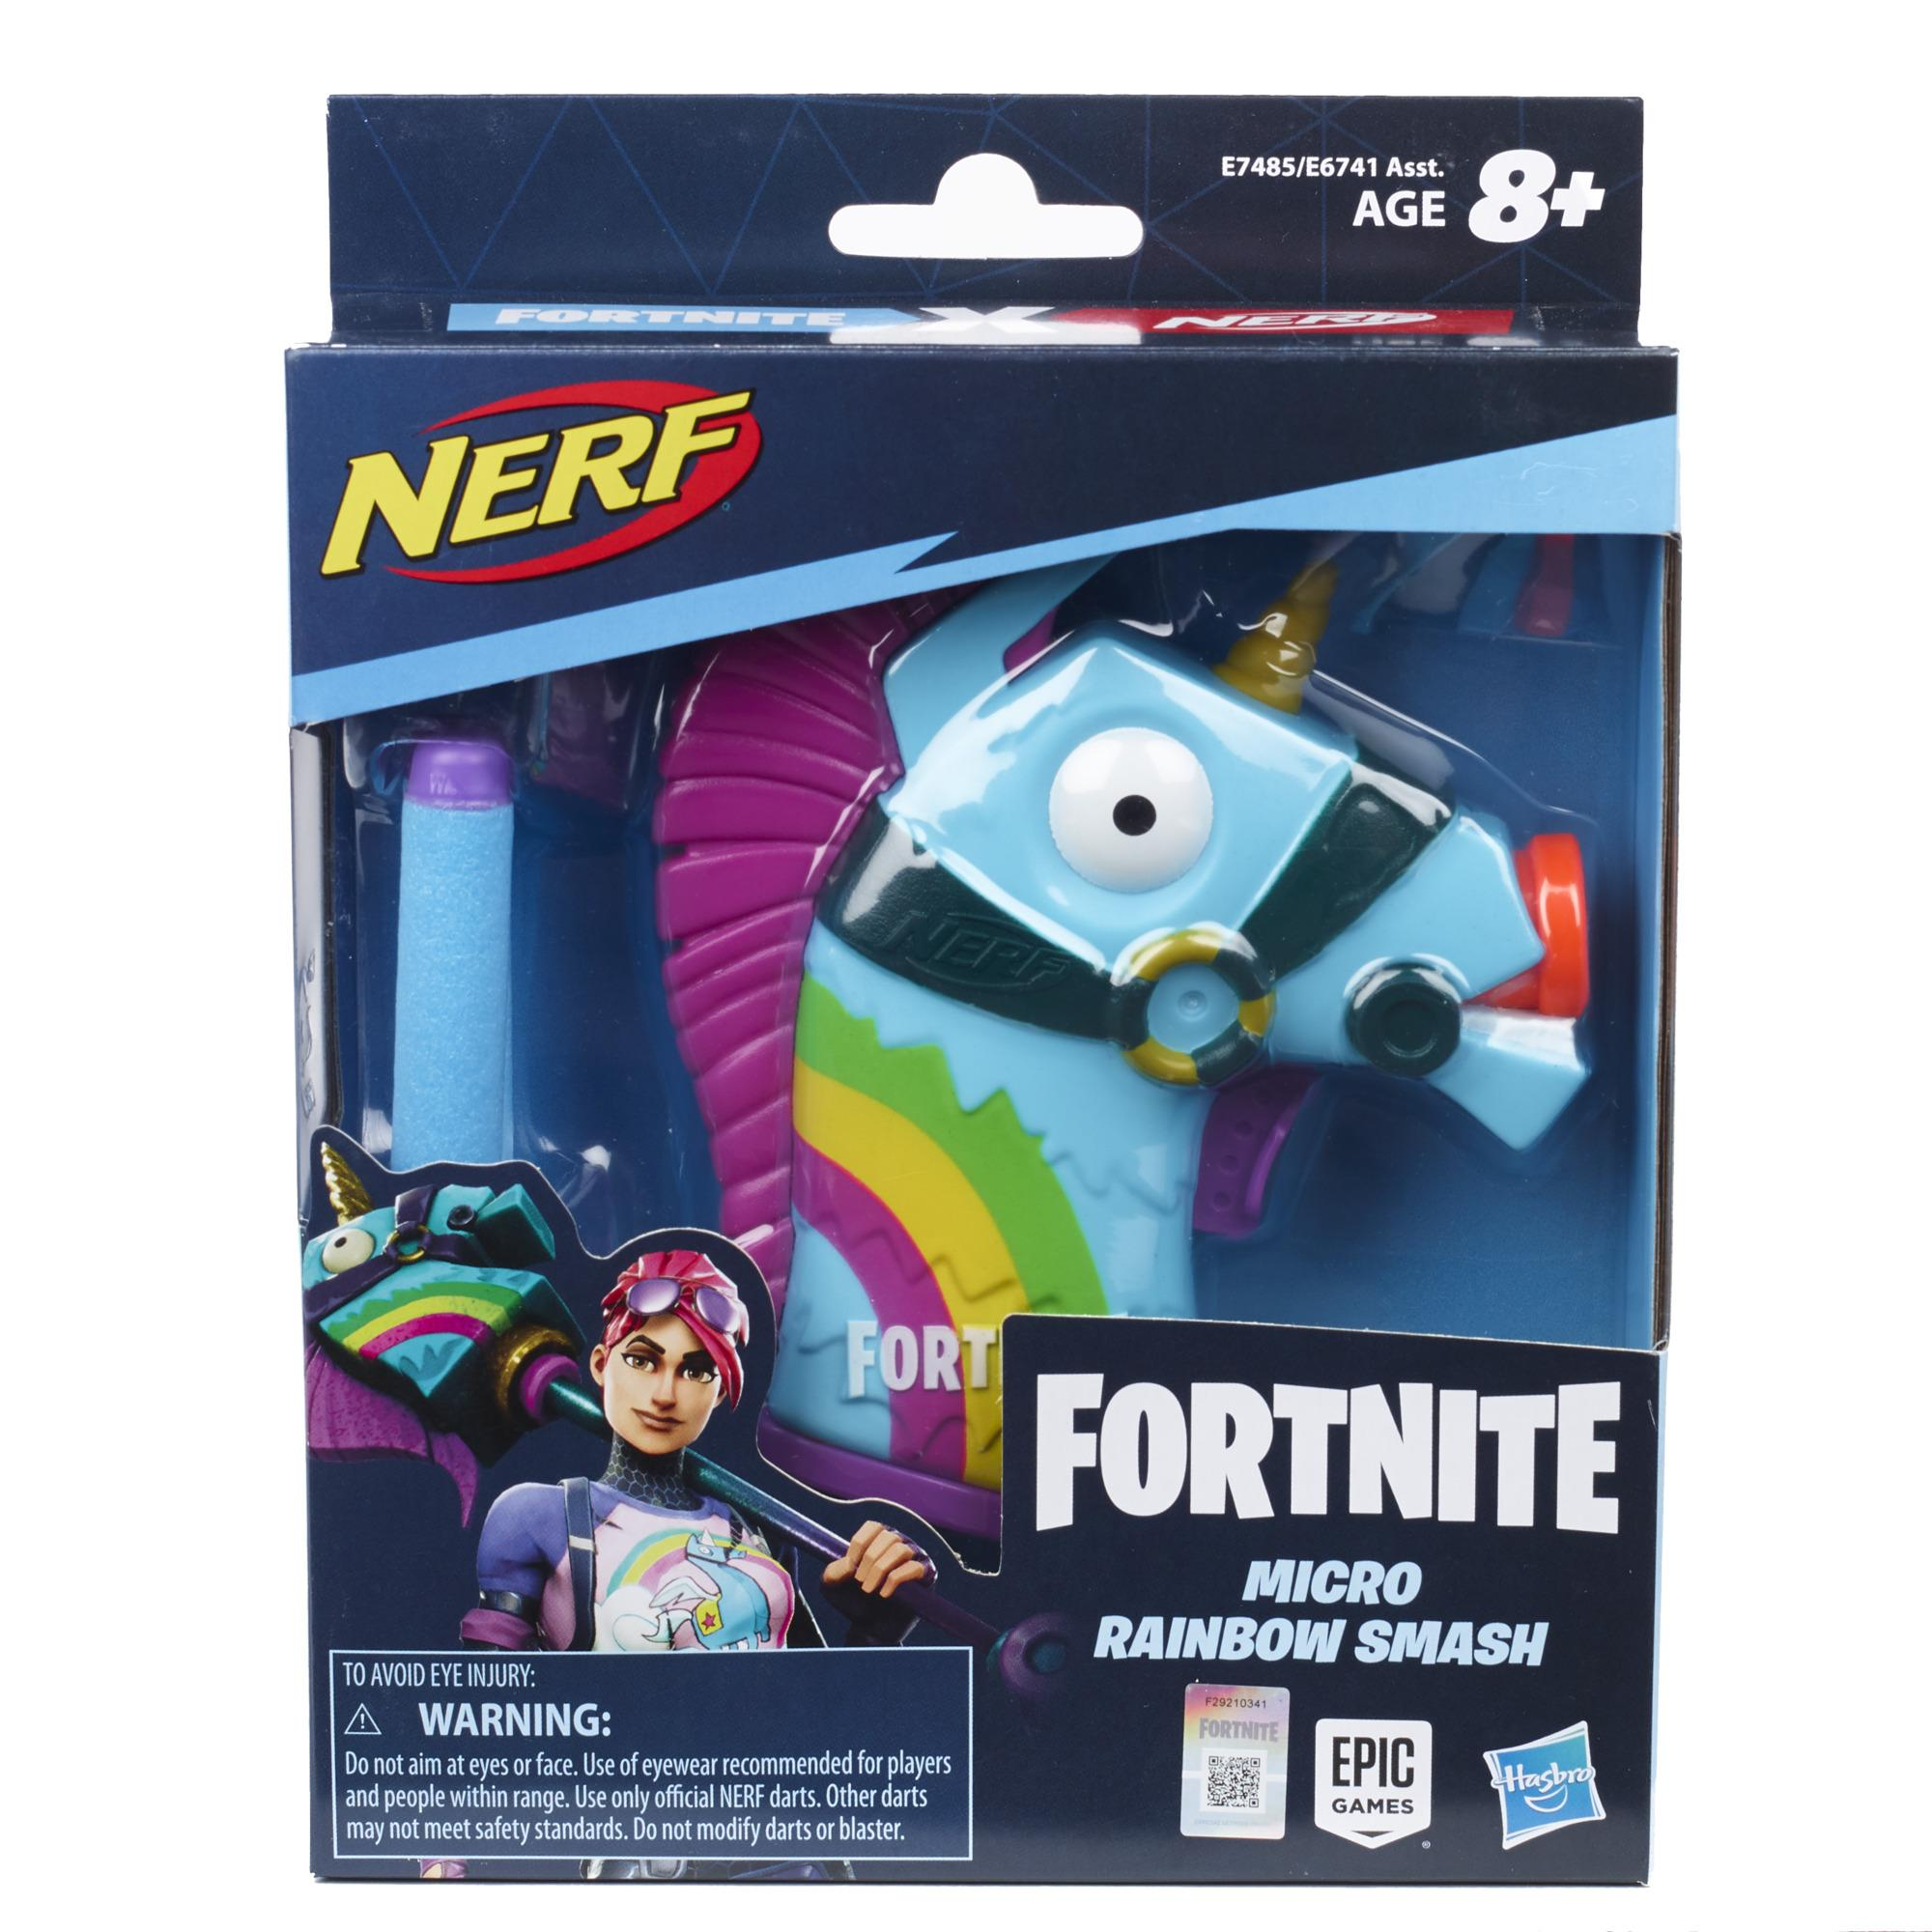 Nerf MicroShots Fortnite Rainbow Smash -- Mini Dart Blaster and 2 Official Nerf Elite Darts -- For Youth, Teens, Adults